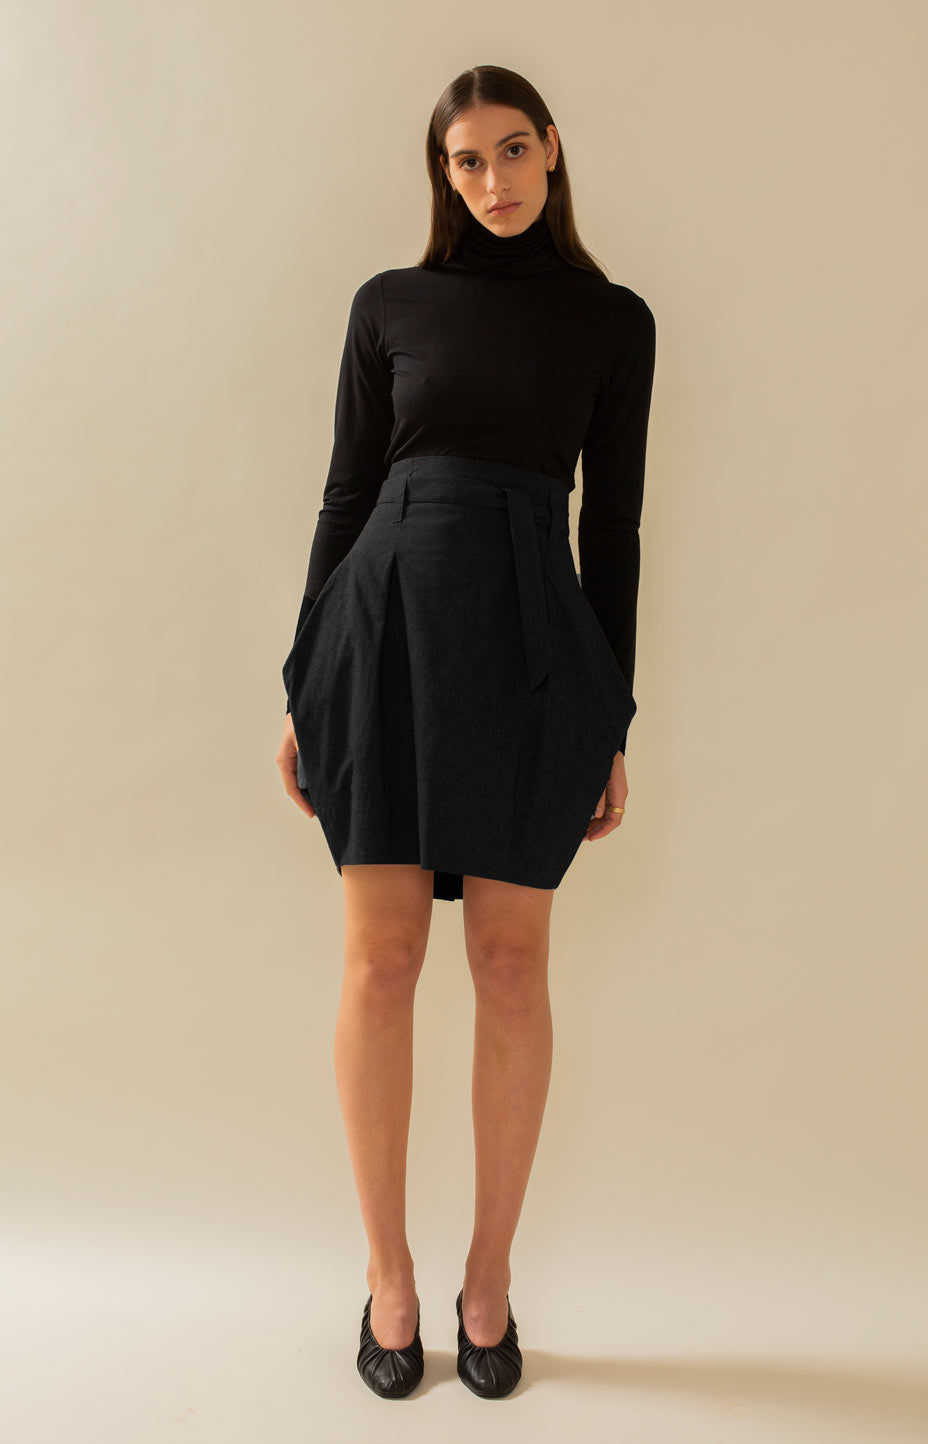 Radalla Tulip Skirt Coal Black - Bottoms - TAUKO - TAUKODESIGN